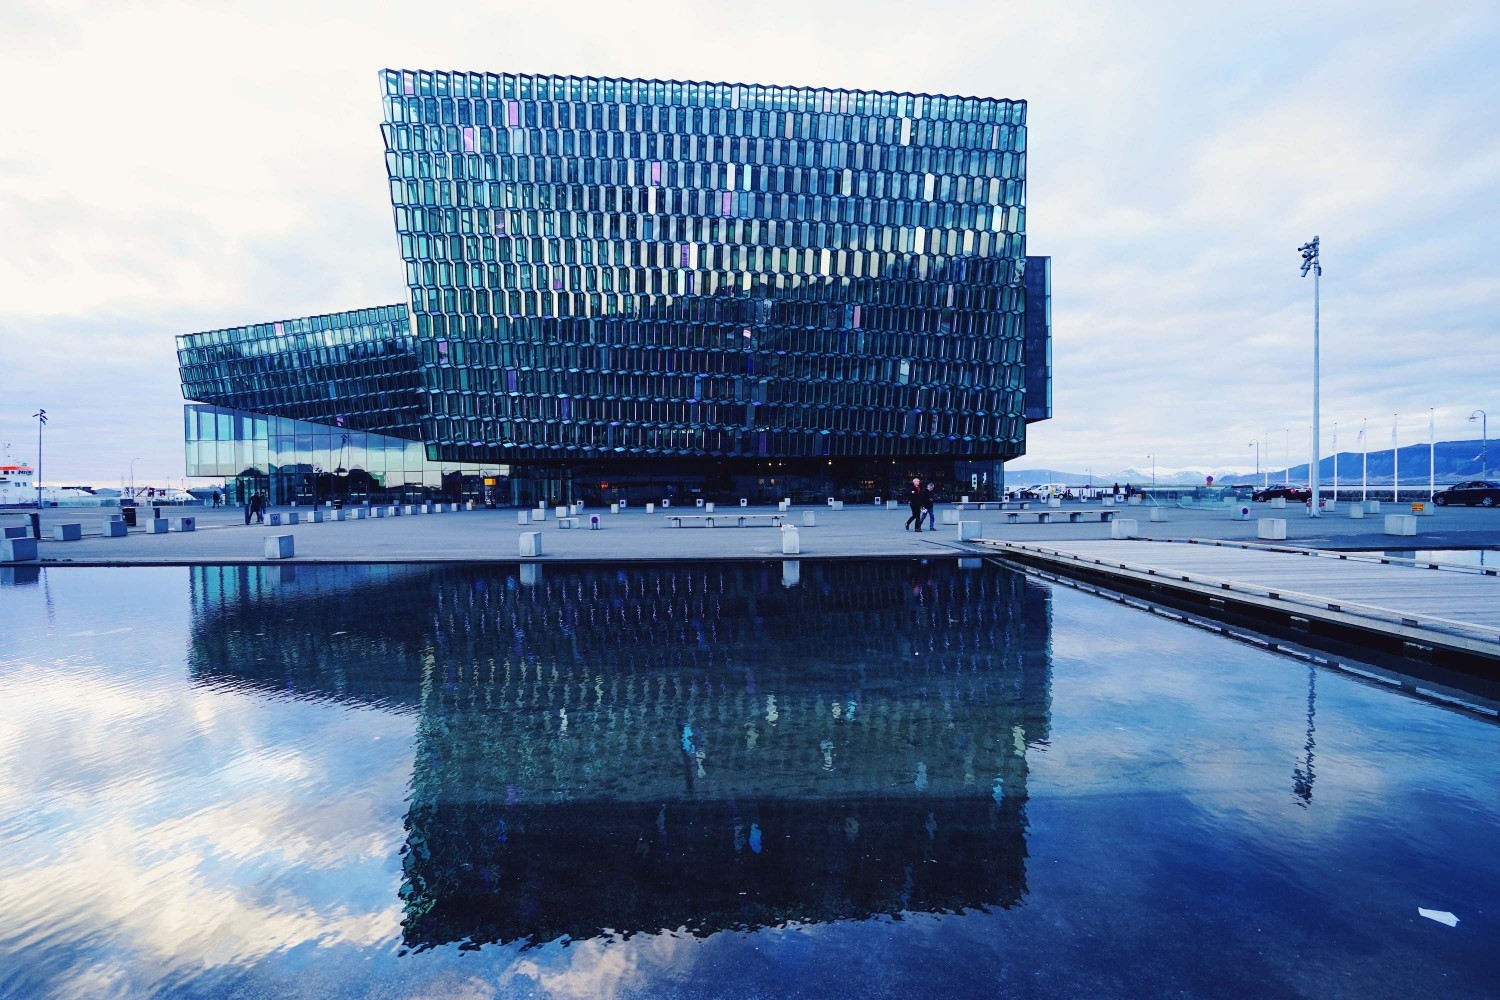 harpa-concert-hall-dante-vincent-photography-06